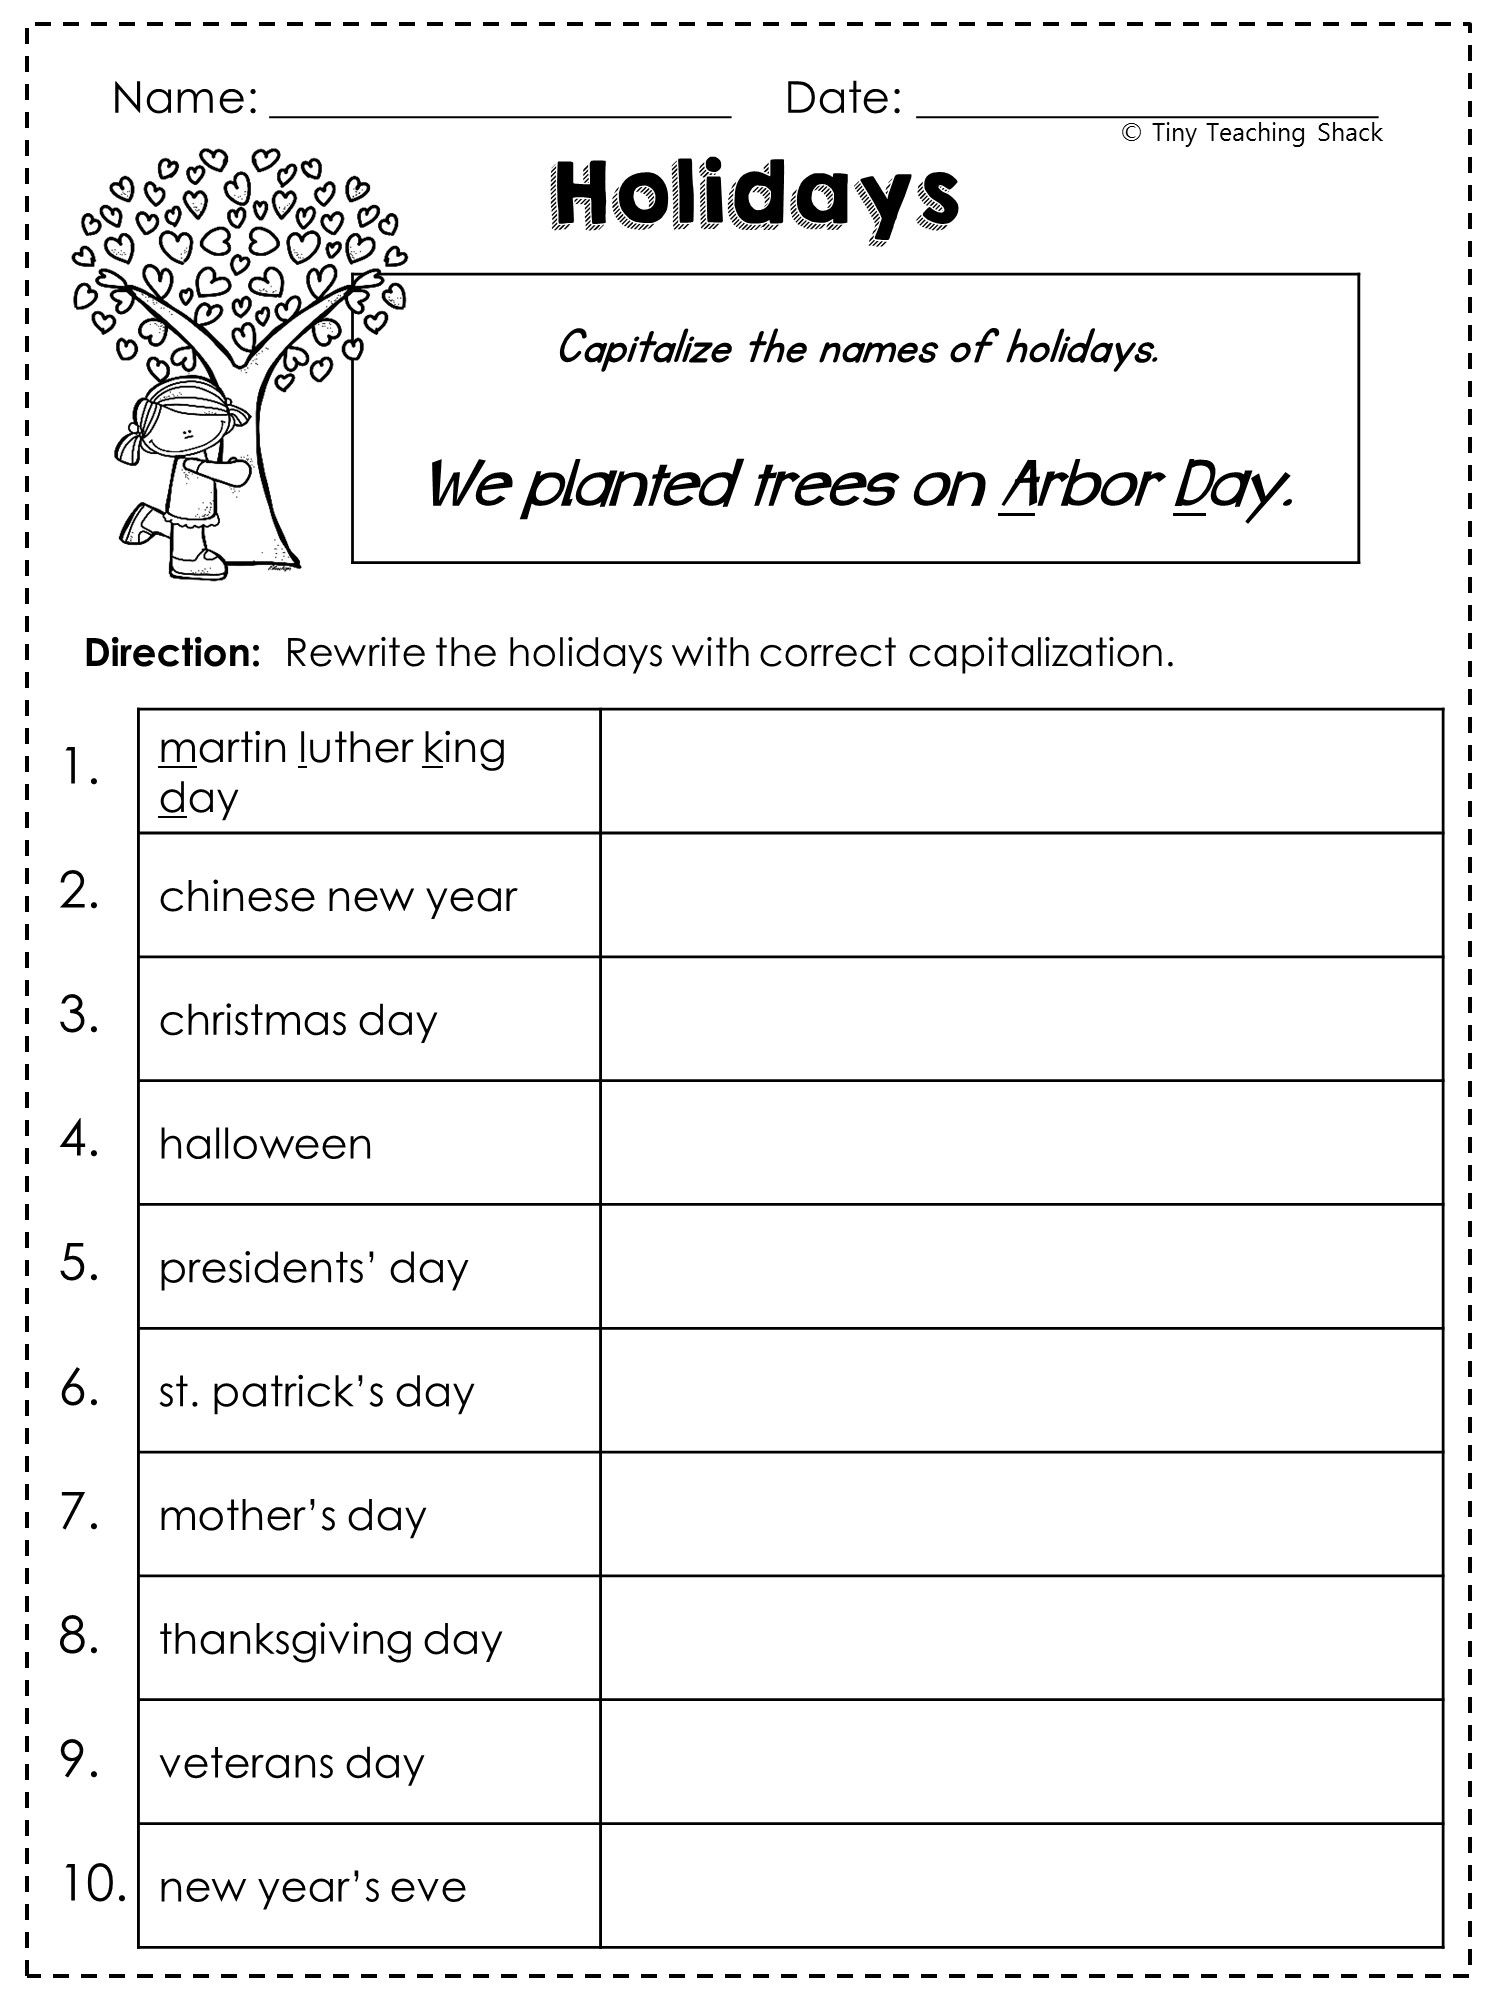 Worksheets Free Second Grade Language Arts Worksheets 2nd grade language arts and grammar practice sheets freebie common free capitalization worksheet